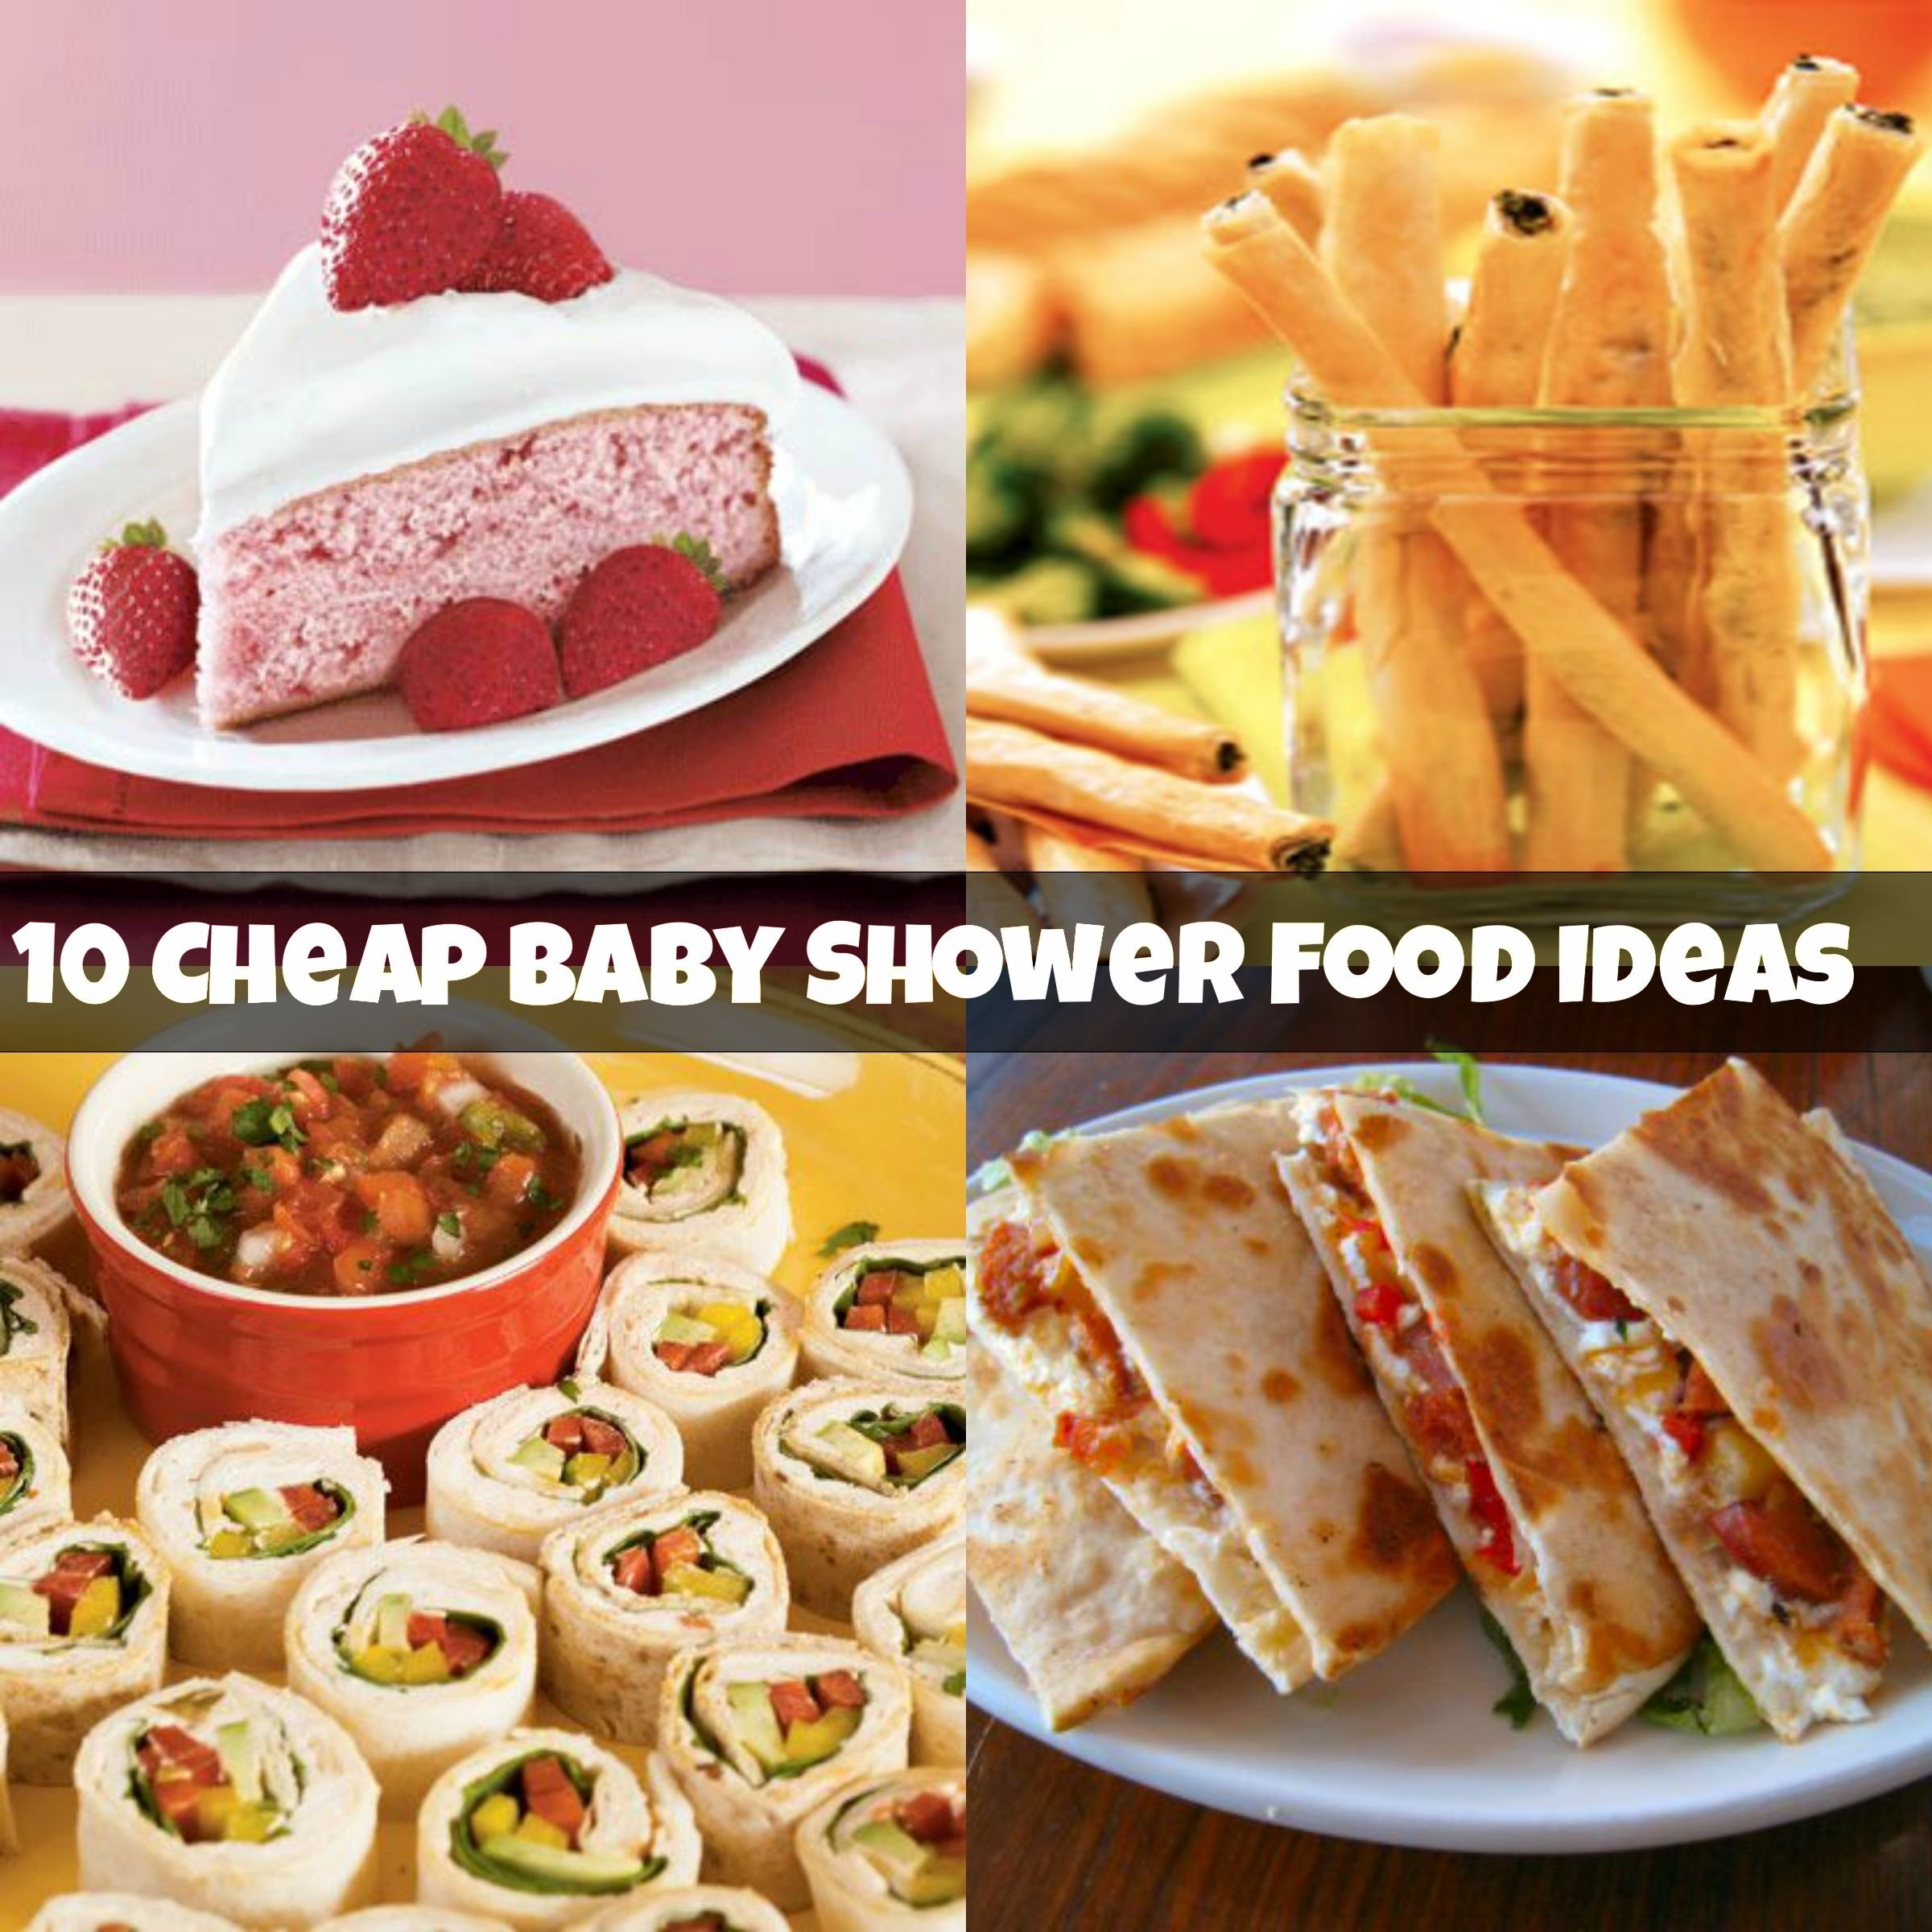 10 Elegant Easy Baby Shower Food Ideas cheap food ideas for baby shower omega center ideas for baby